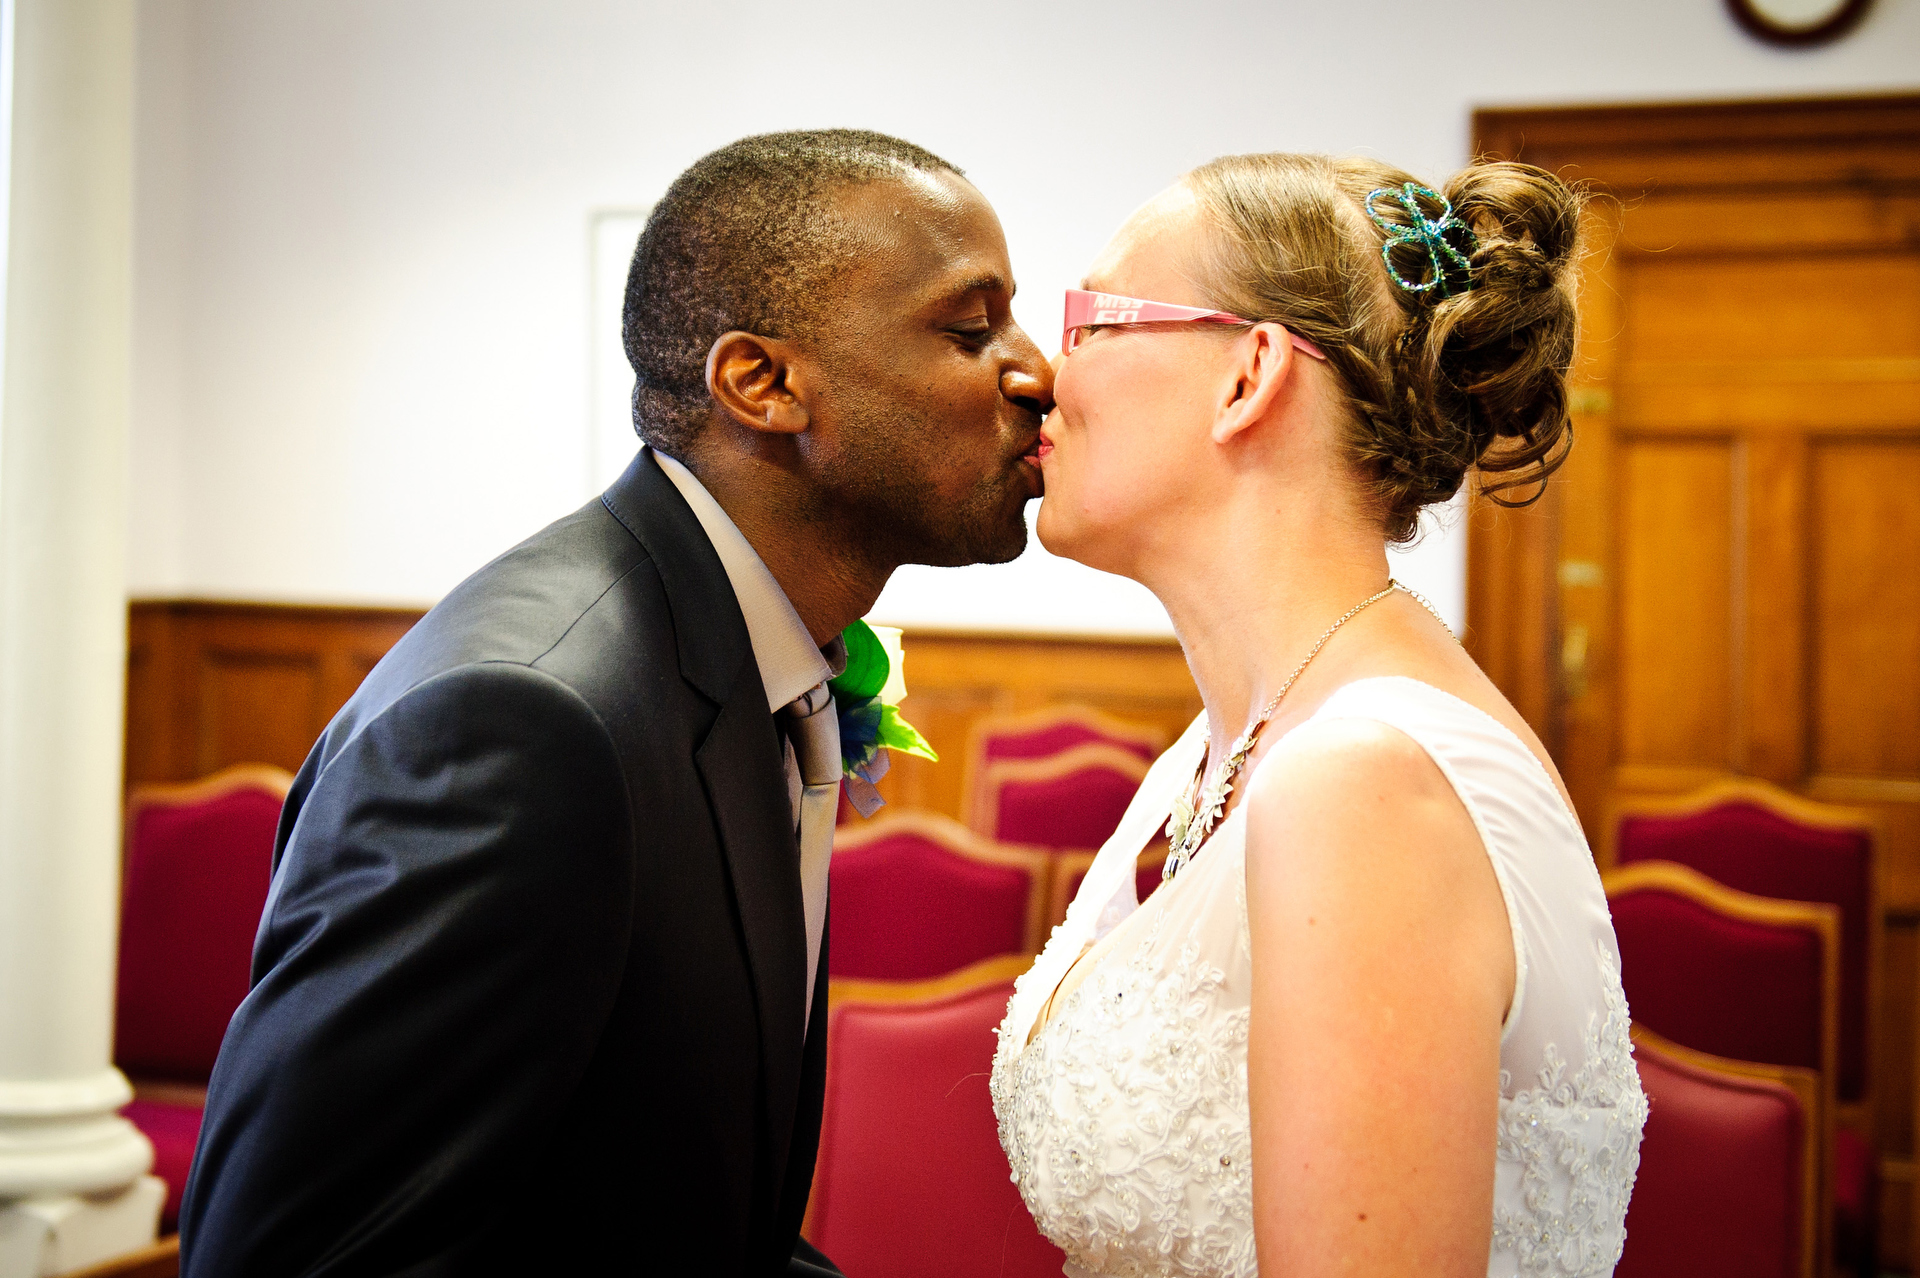 Island Greffe Registrar's Office Wedding Photography | They have been pronounced husband and wife